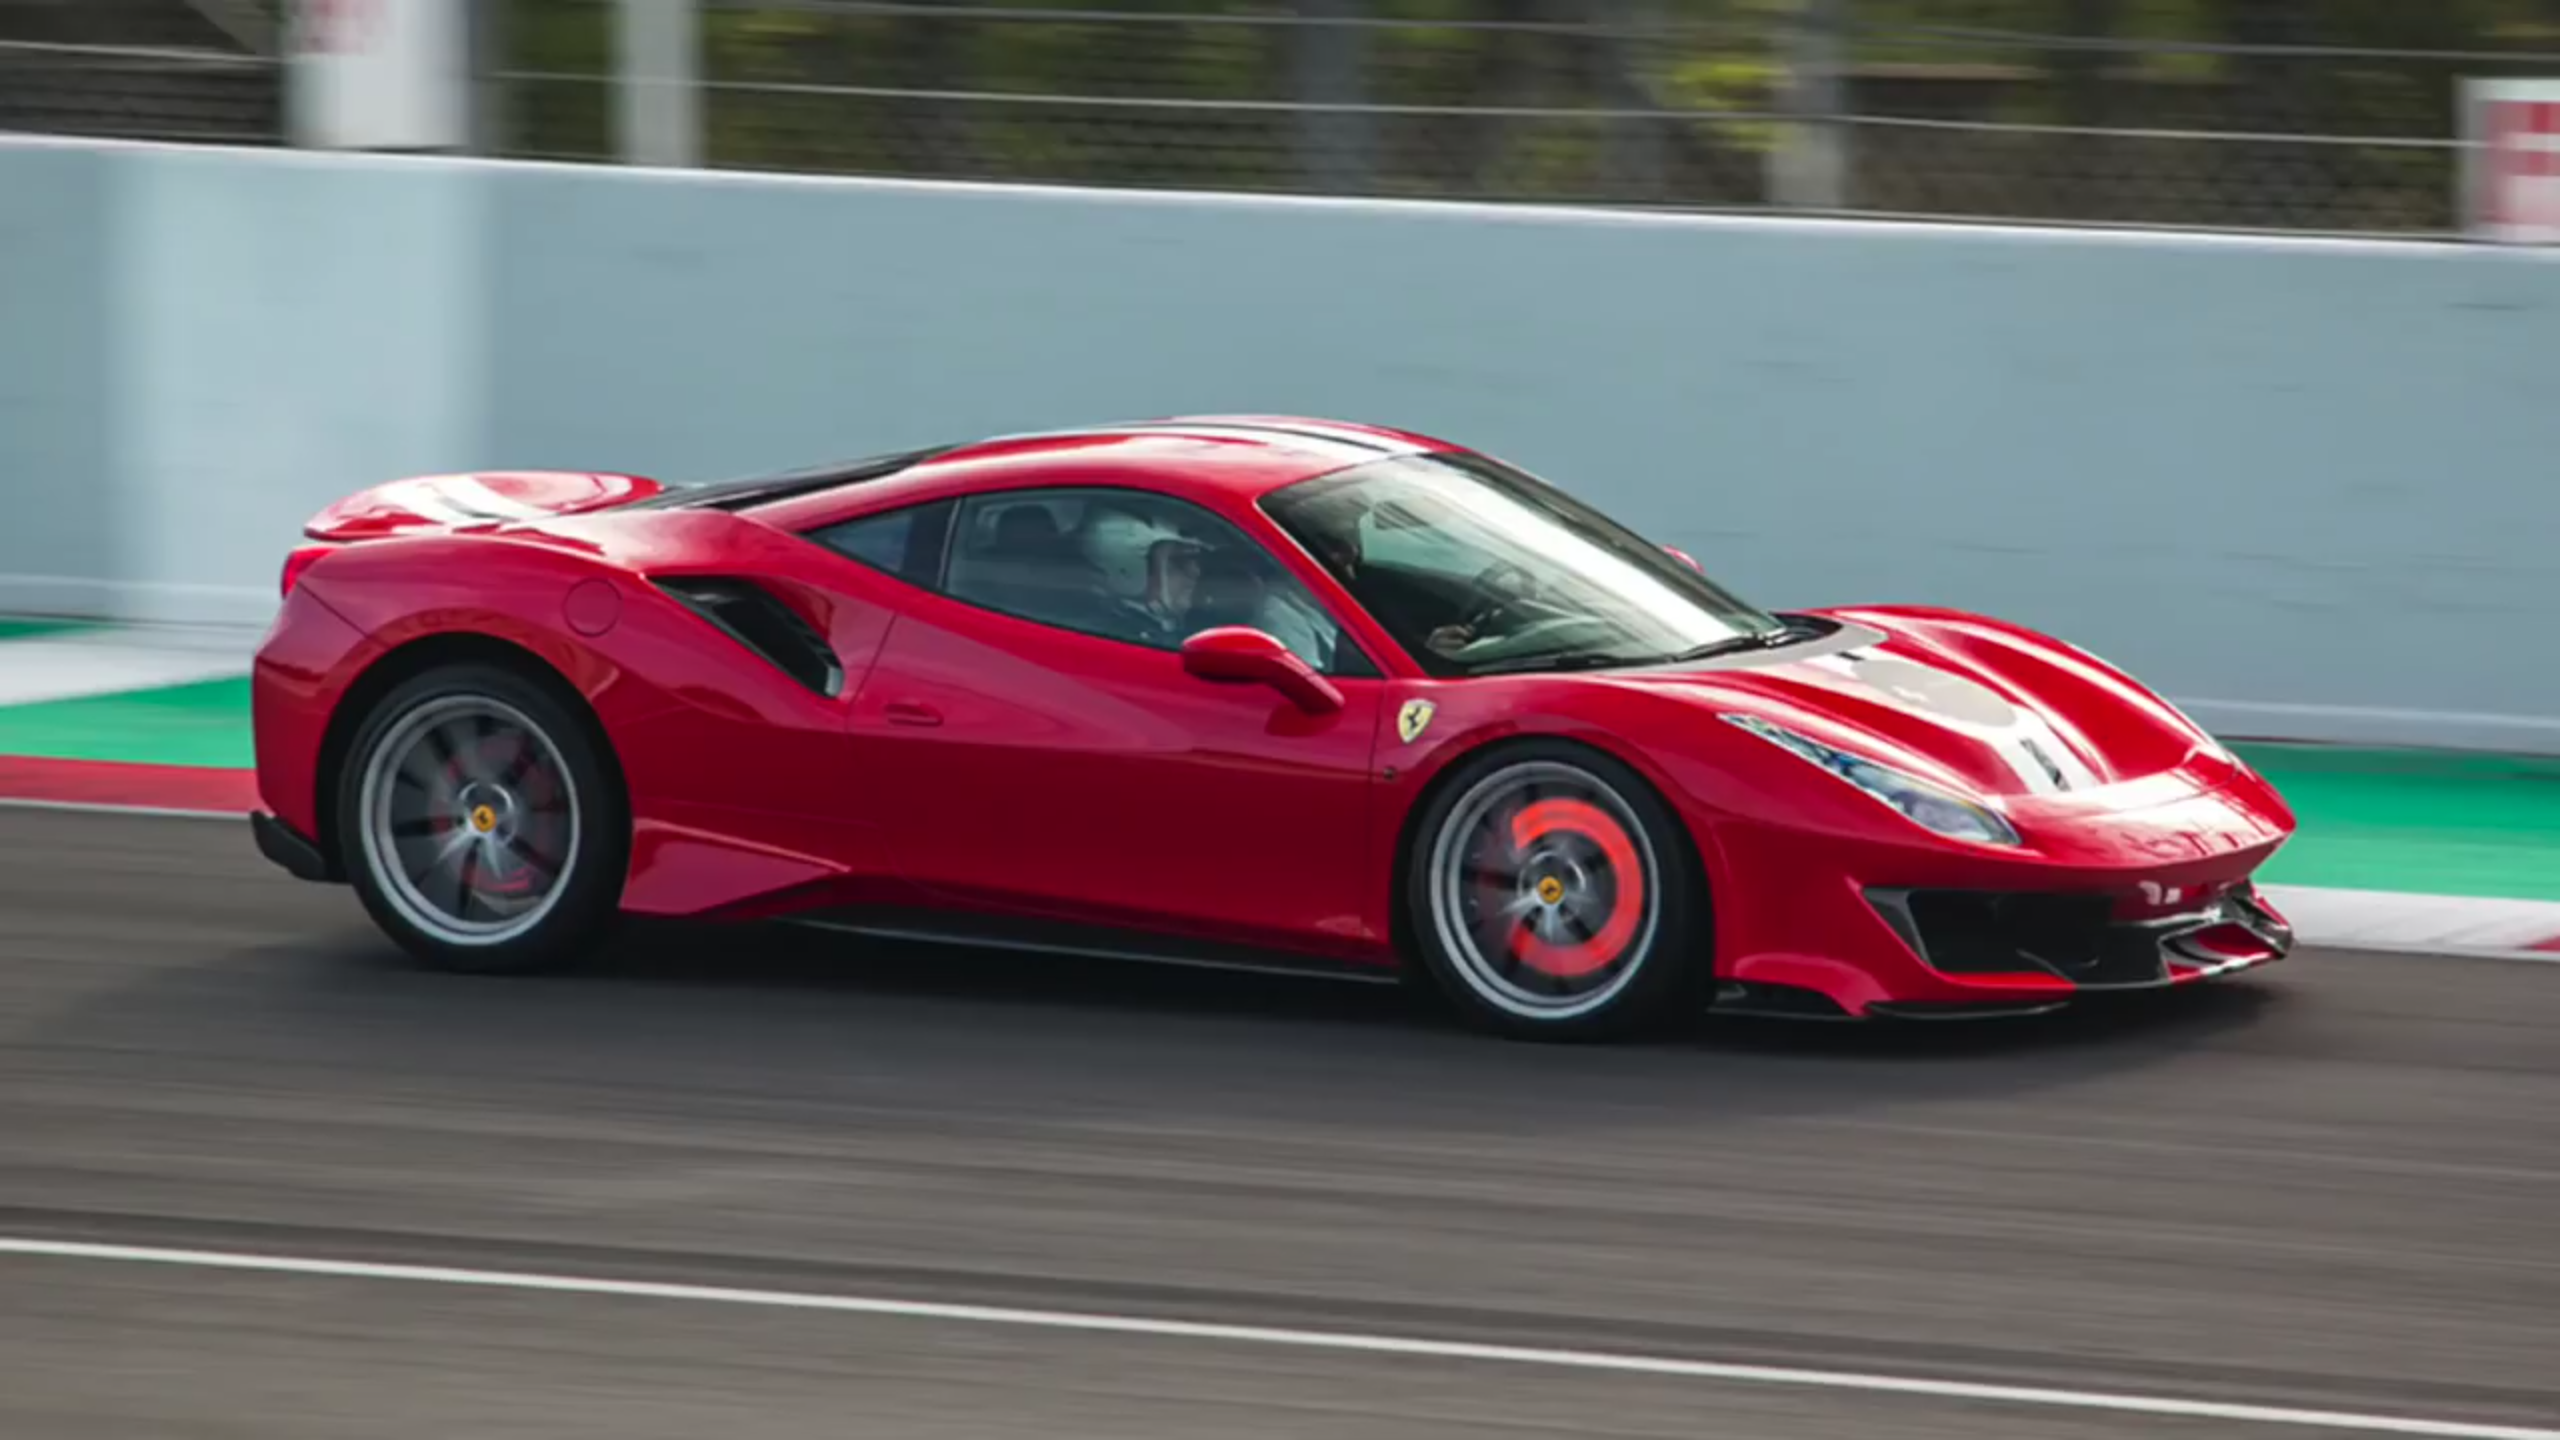 91 Best Review 2019 Ferrari 488 Pista 2 First Drive for 2019 Ferrari 488 Pista 2